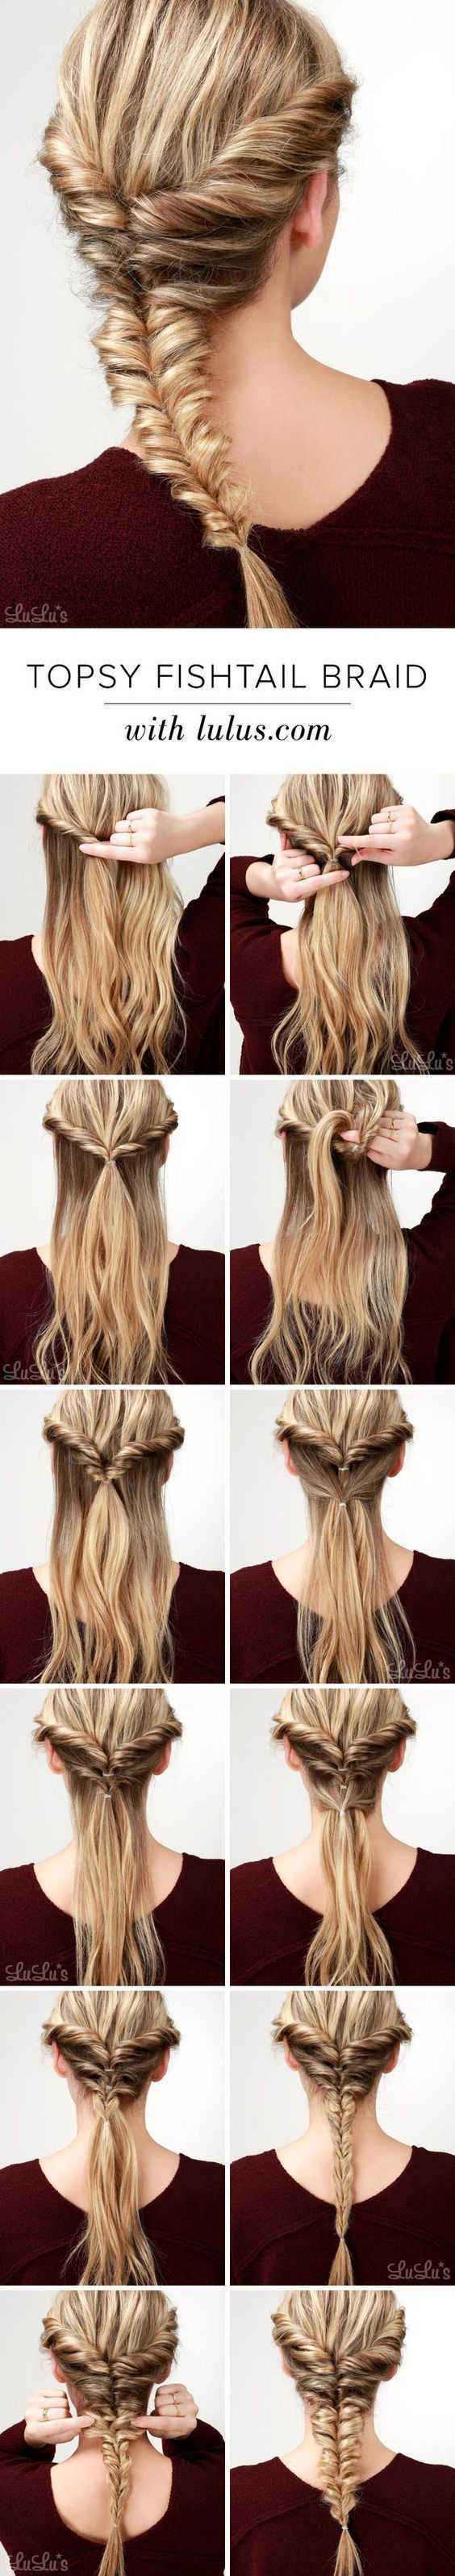 20 Beautiful Fishtail Braid Hair Tutorials for your best look